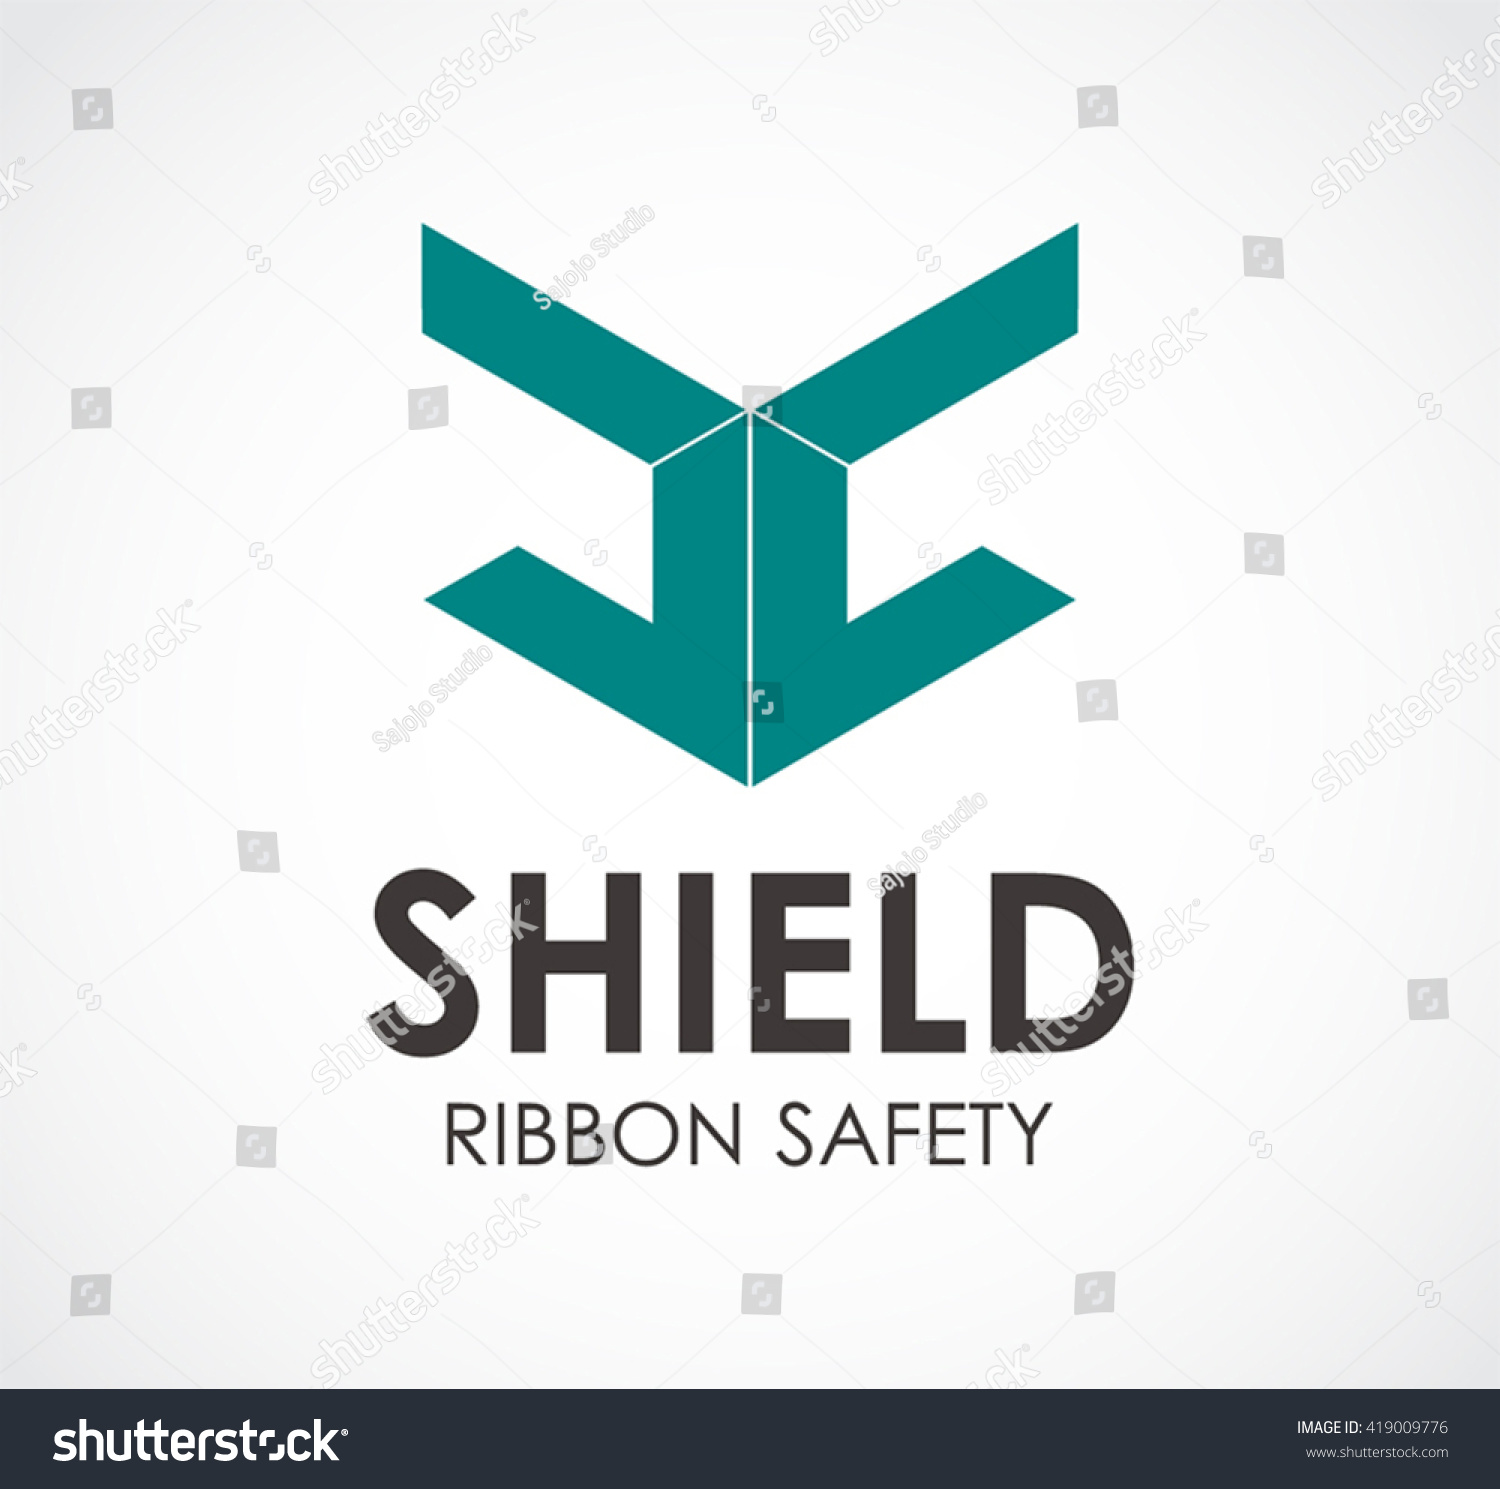 Shield Ribbon Of Safety Abstract Vector And Logo Design Or Template Protection Business Icon Company